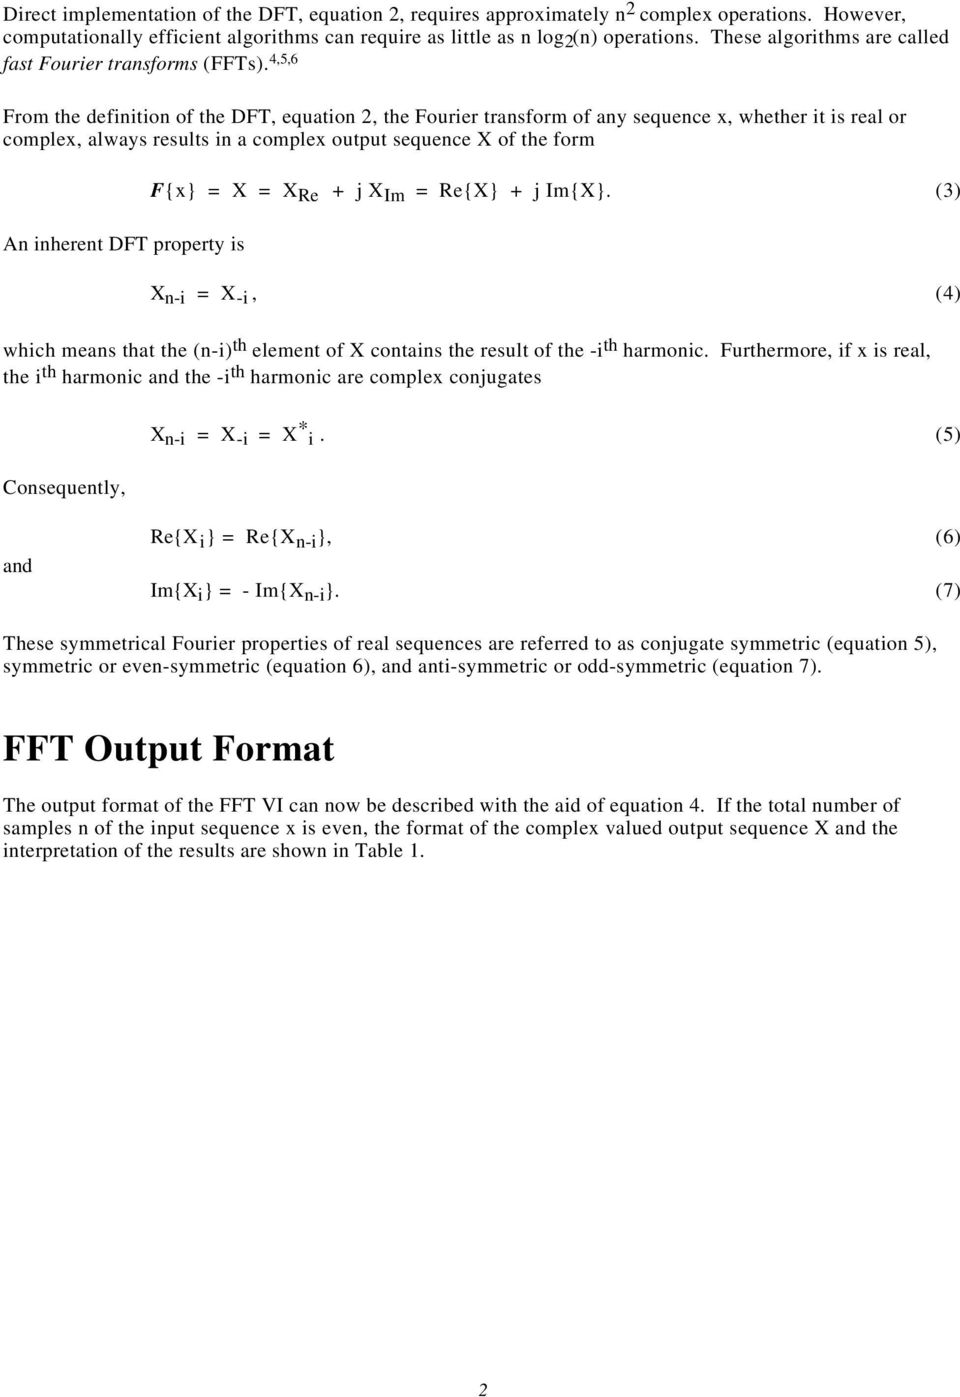 4,5,6 From the definition of the DFT, equation 2, the Fourier transform of any sequence x, whether it is real or complex, always results in a complex output sequence X of the form An inherent DFT